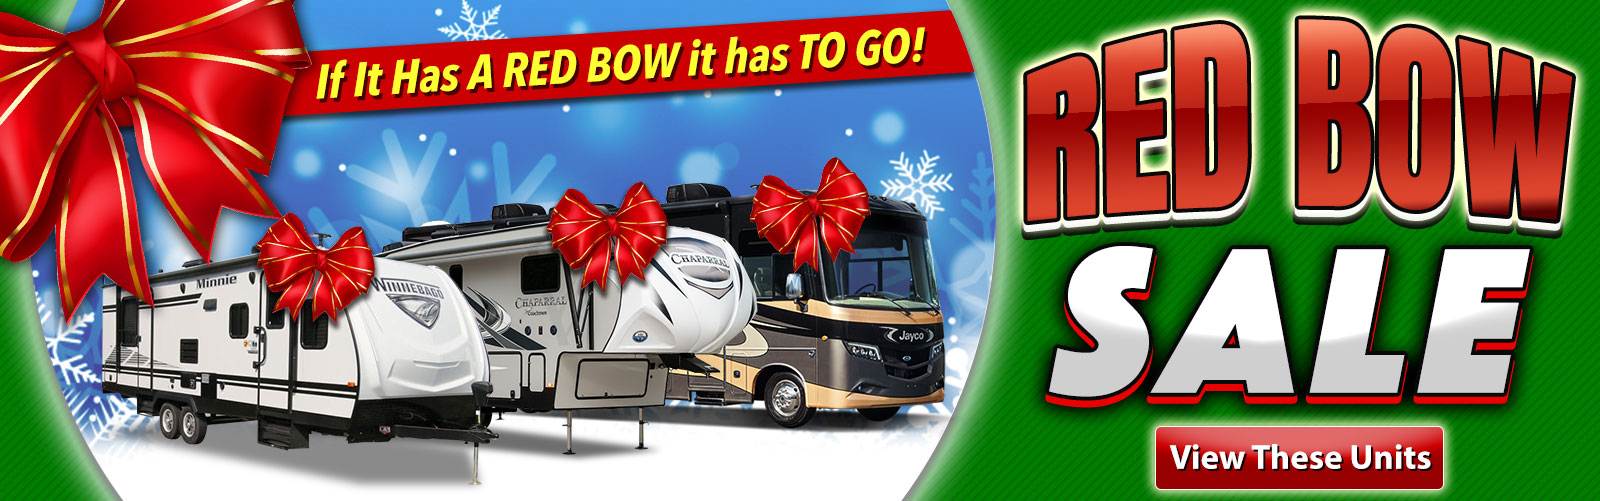 Red Bow RV Sale Bill Plemmons RV World North Carolina